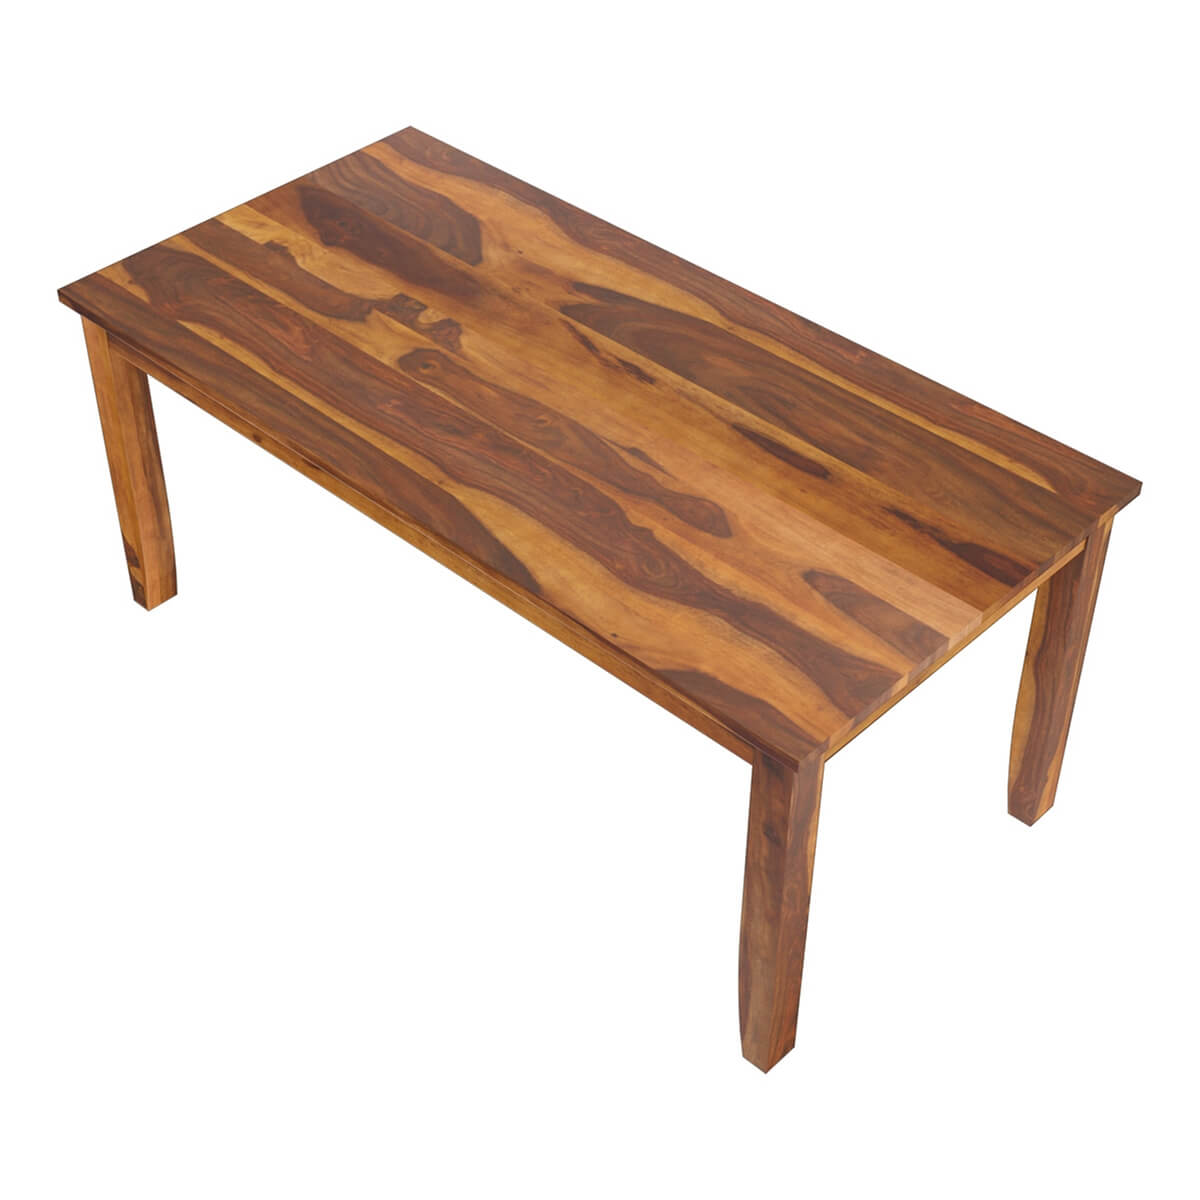 Cariboo Contemporary Tapered Legs Solid Wood Dining Table : 44232 from sierralivingconcepts.com size 1200 x 1200 jpeg 128kB